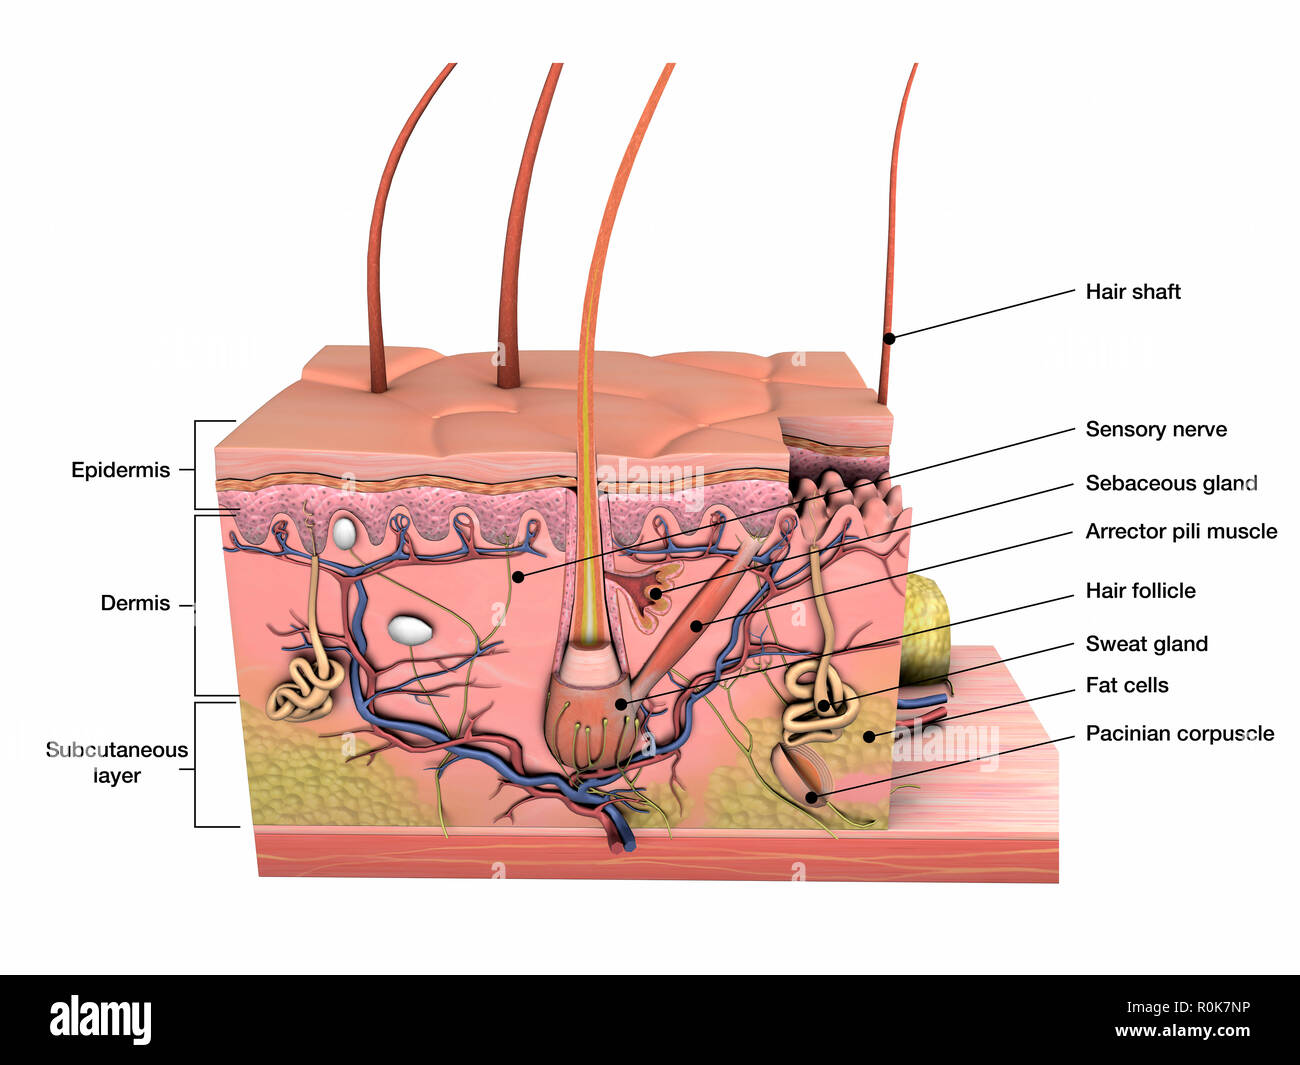 Anatomy of human skin with labels. - Stock Image